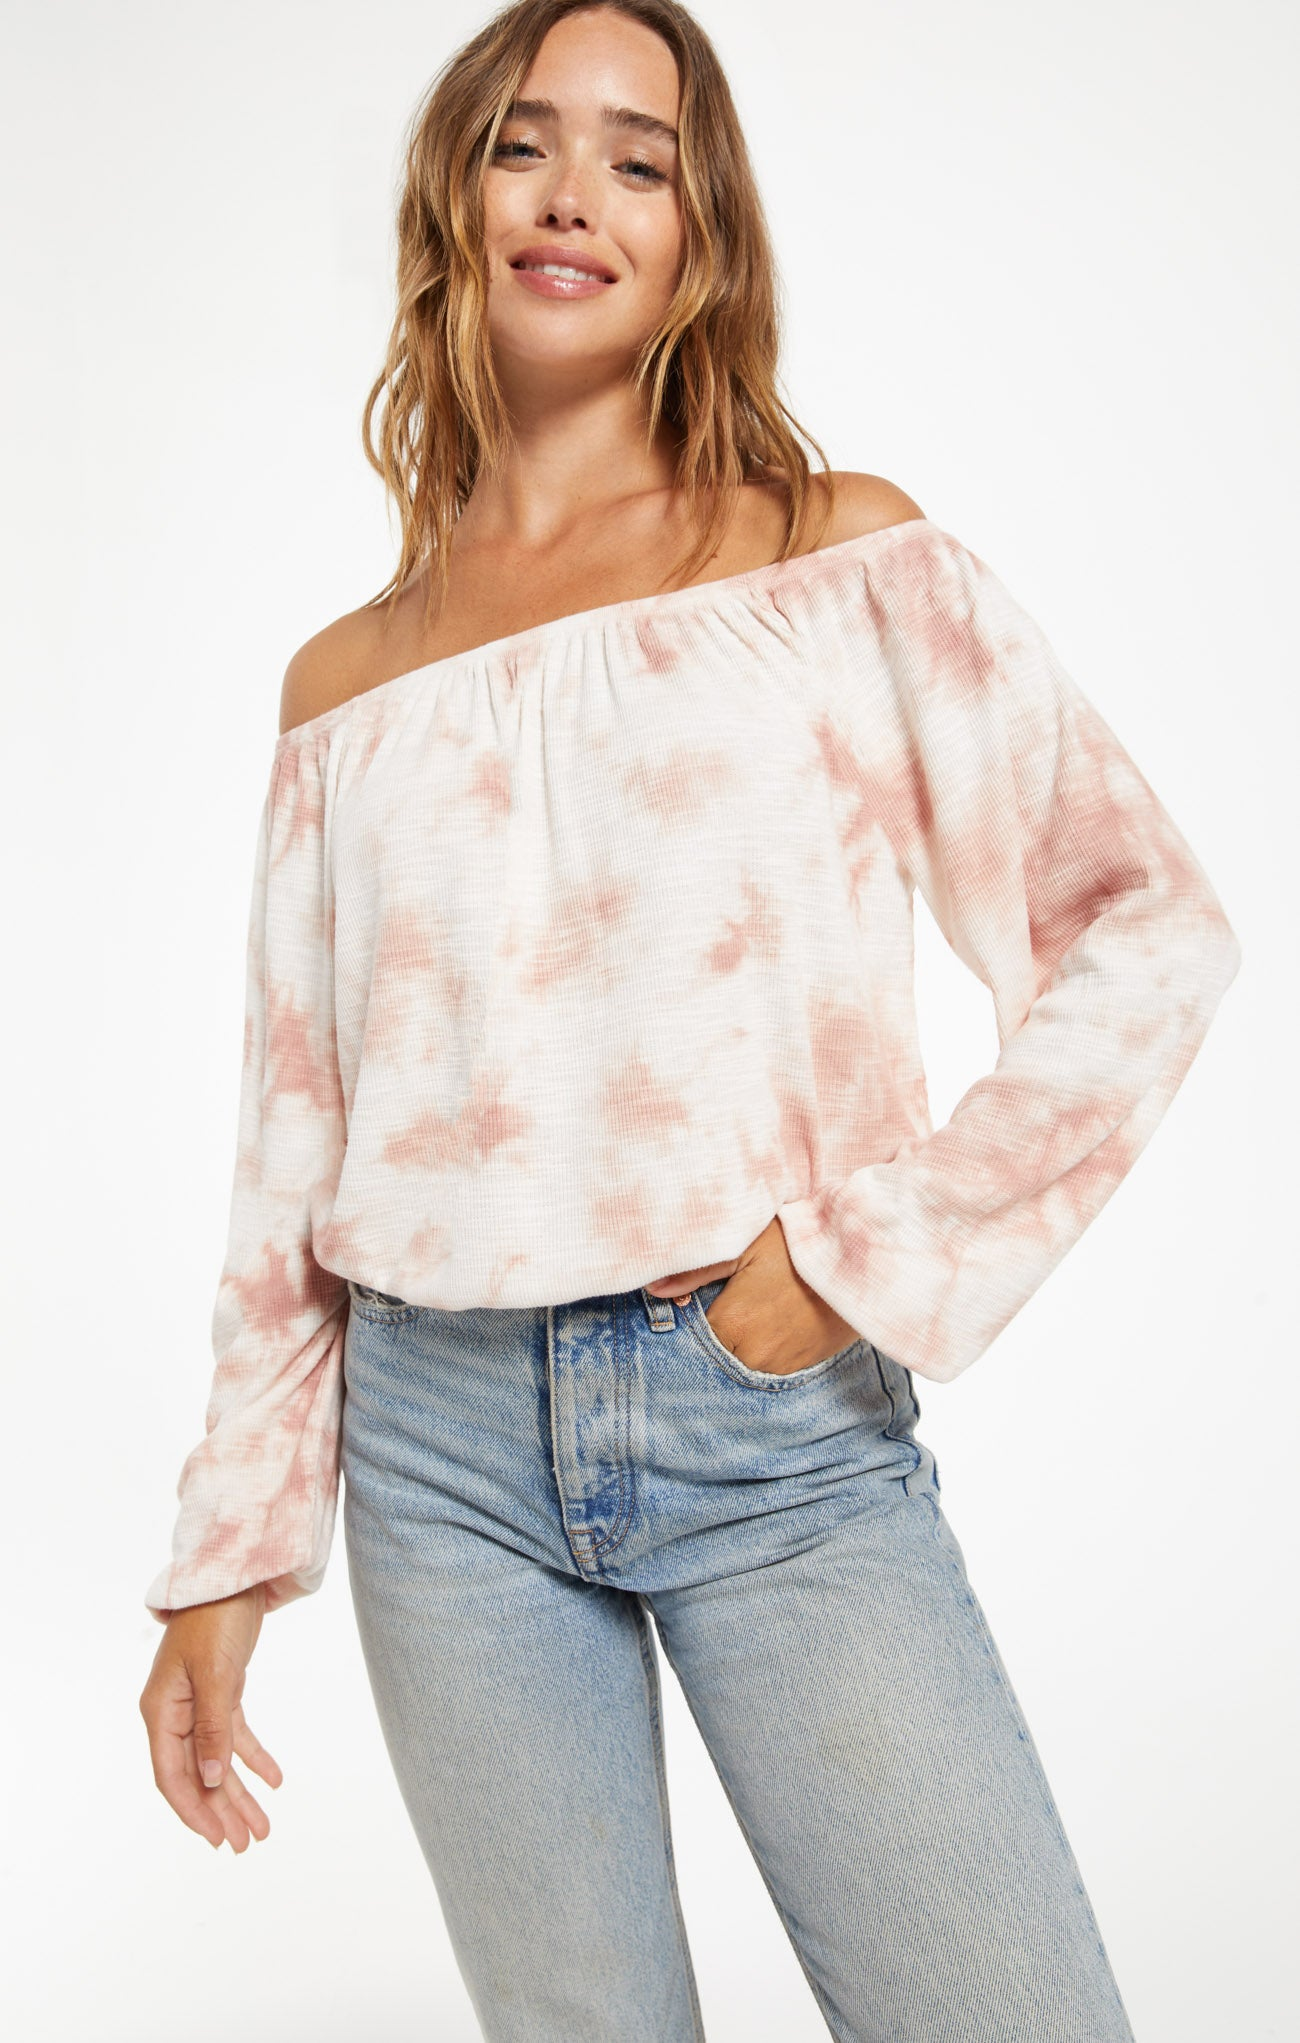 Tops Liv Cloud Tie-Dye Top Liv Cloud Tie-Dye Top